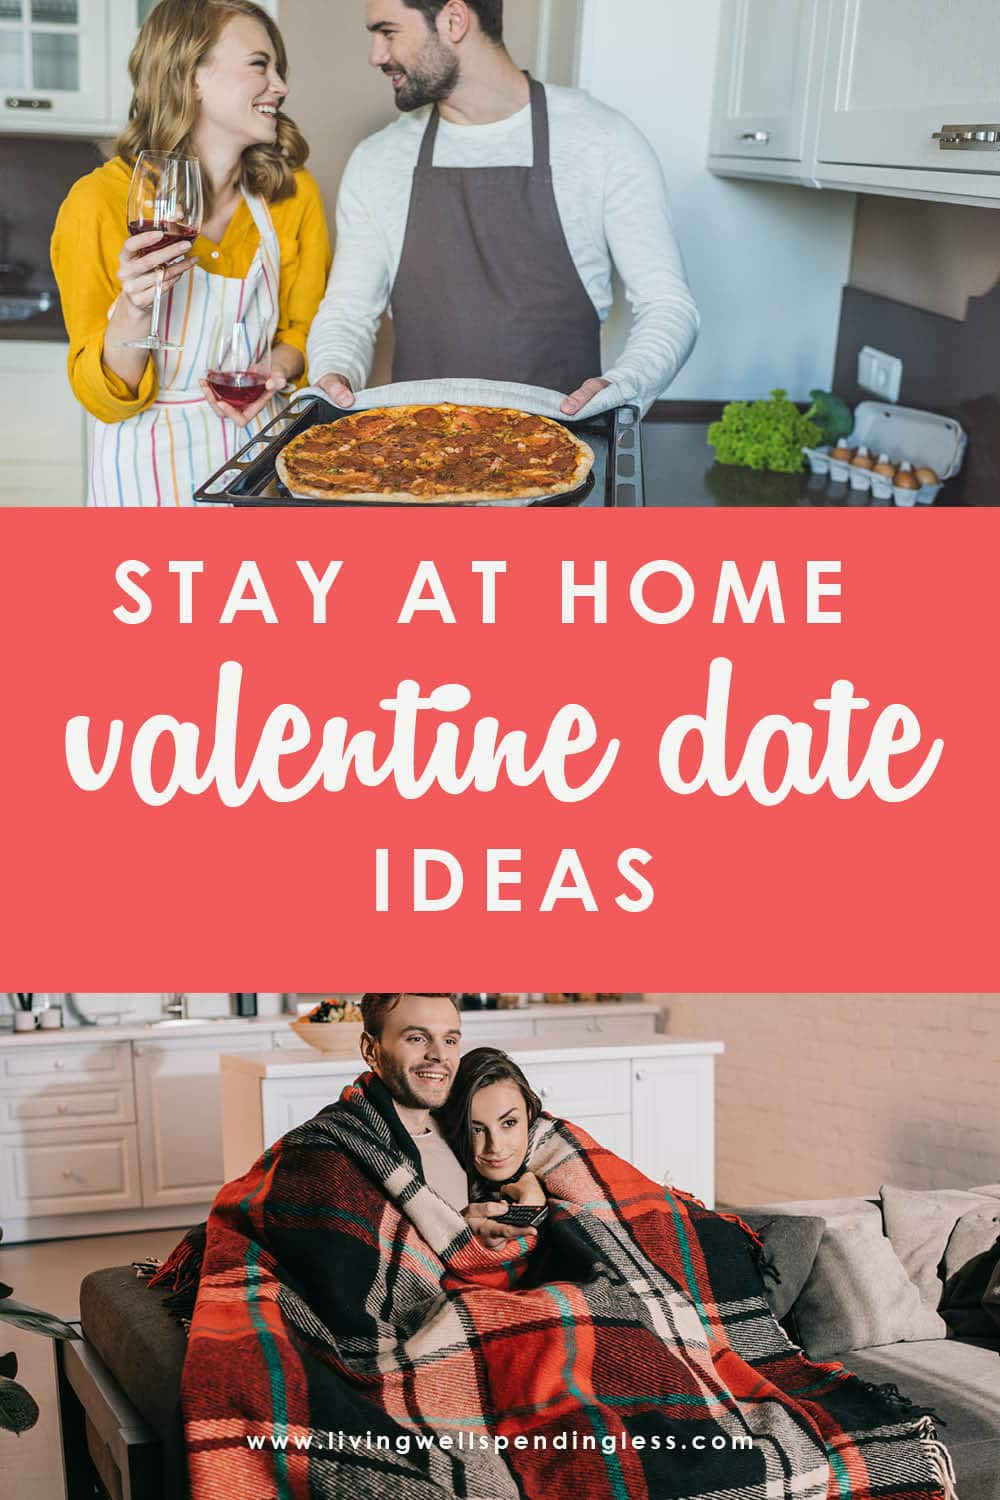 Looking to do something different this year for Valentine's Day? Check out these 10 different ideas to make the night more memorable, stress-free, and that the whole family can do together. There are super fun and budget-friendly ideas everyone will be sure to love! #valentinesday #budgetfriendlydates #familyvalentinesday #datenight #familydatenight #makingmemories #foodmadesimple